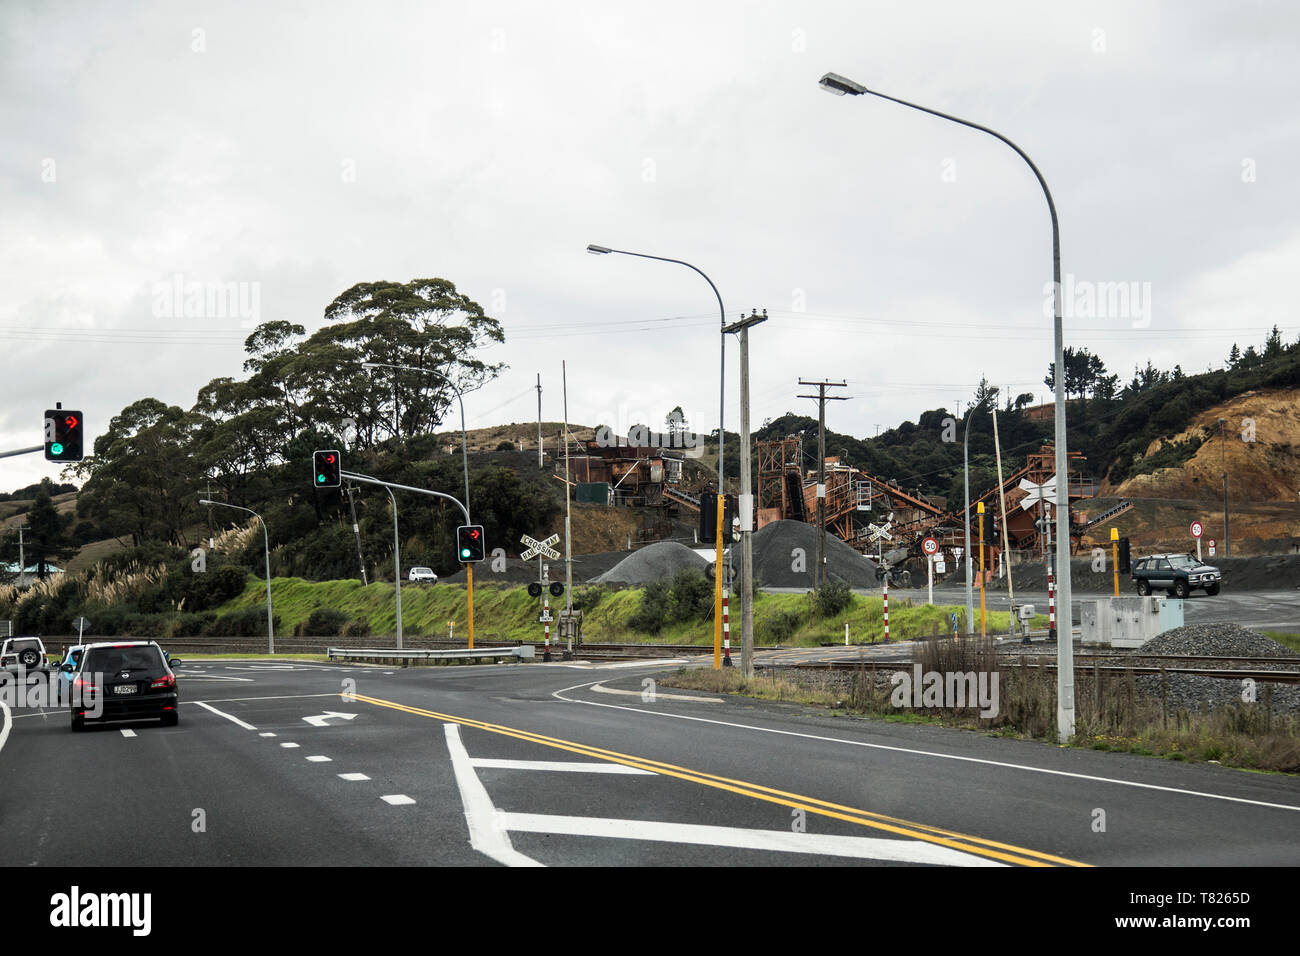 Huntly Quarry on State Highway 1 heading north on Easter weekend. Traffic lights and intersection with railroad crossing on the right. Overcast. - Stock Image